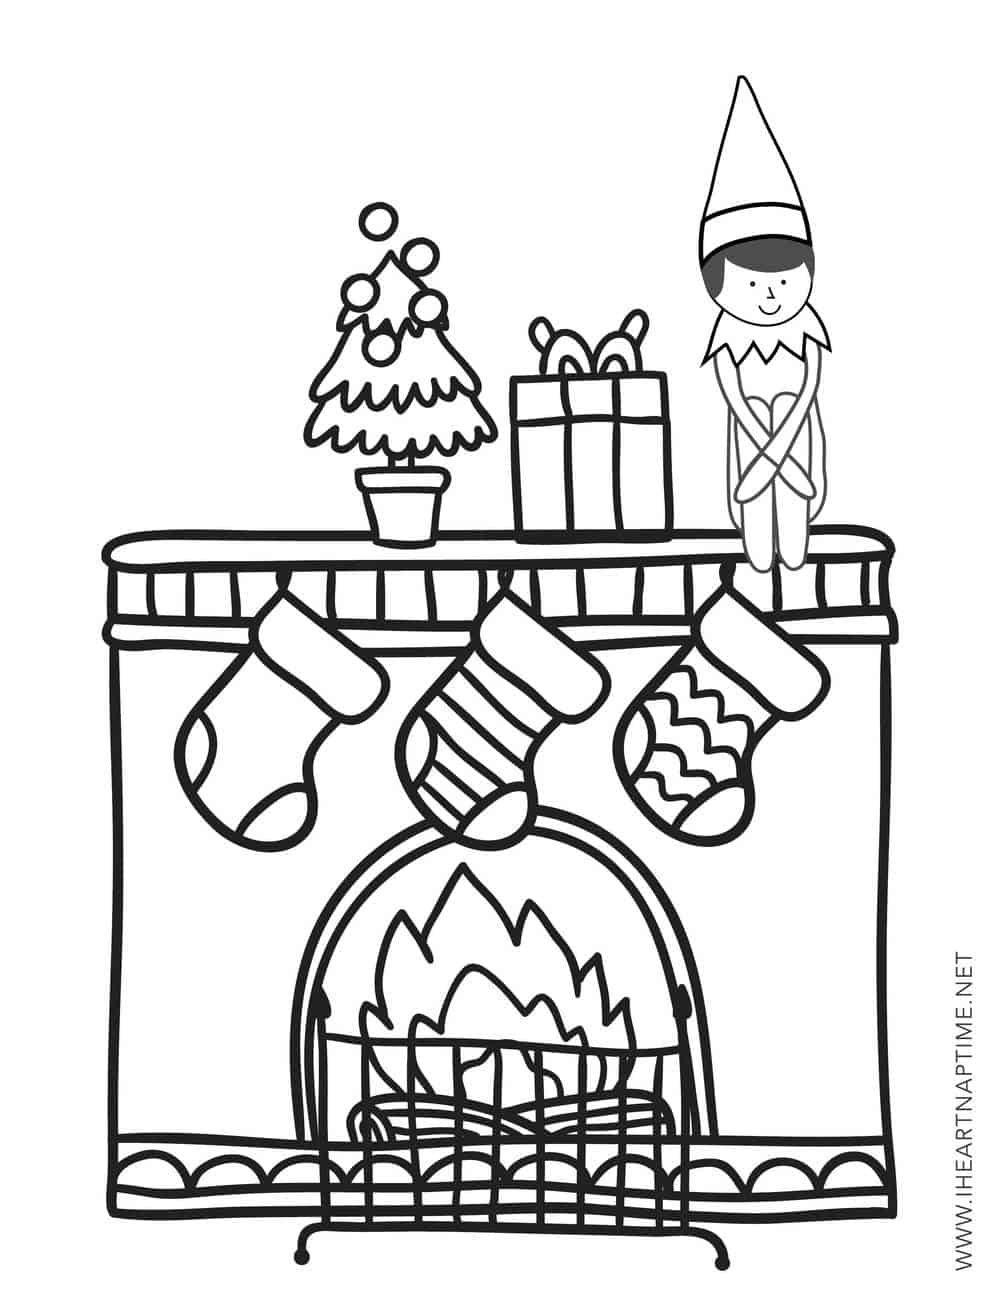 elf on the shelf coloring sheets elf on a shelf coloring pages coloring home elf coloring on sheets shelf the